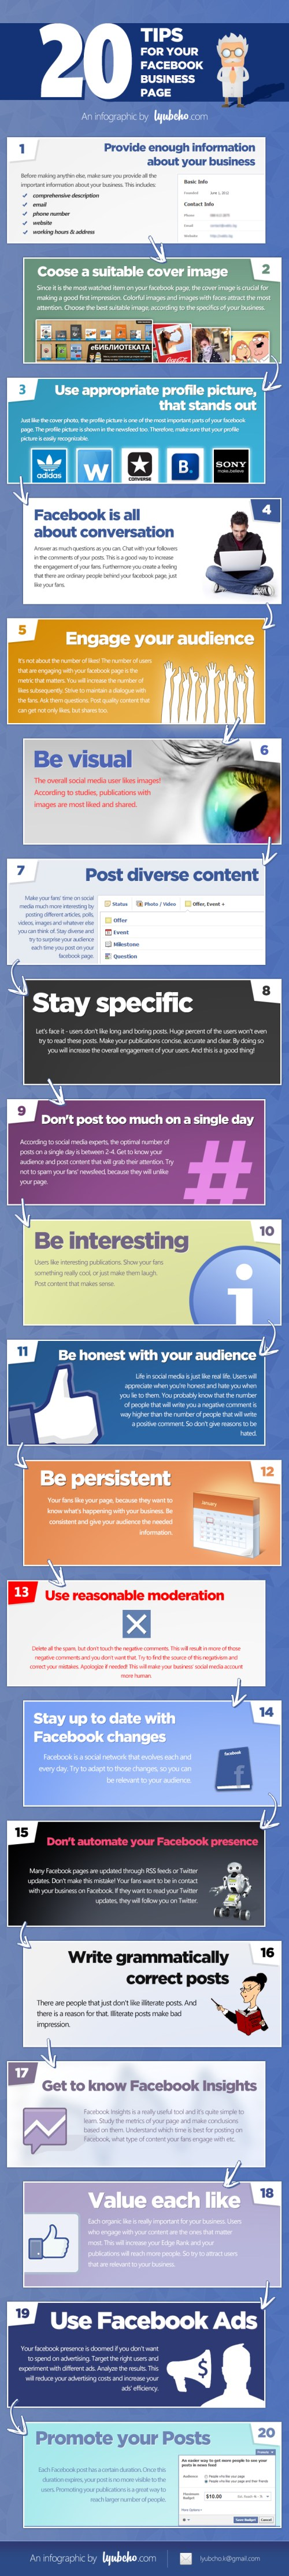 20-tips-for-your-facebook-business-page_51d064da9a762